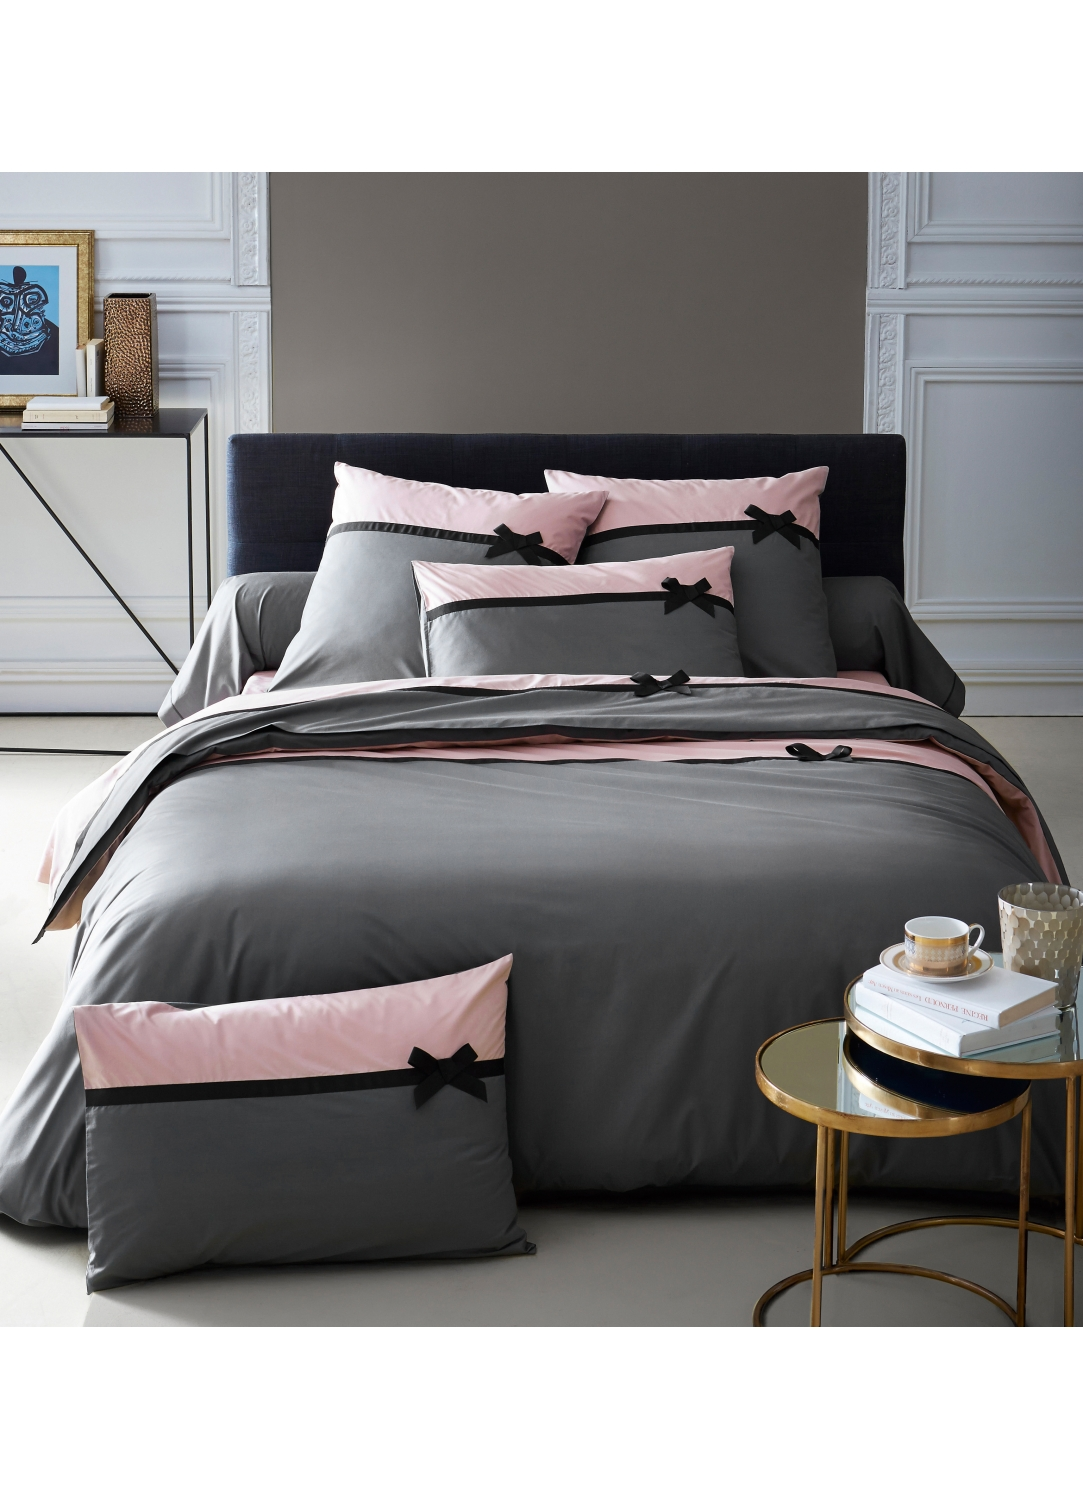 housse de couette frou frou anthracite n ud anthracite homemaison vente en ligne housses. Black Bedroom Furniture Sets. Home Design Ideas